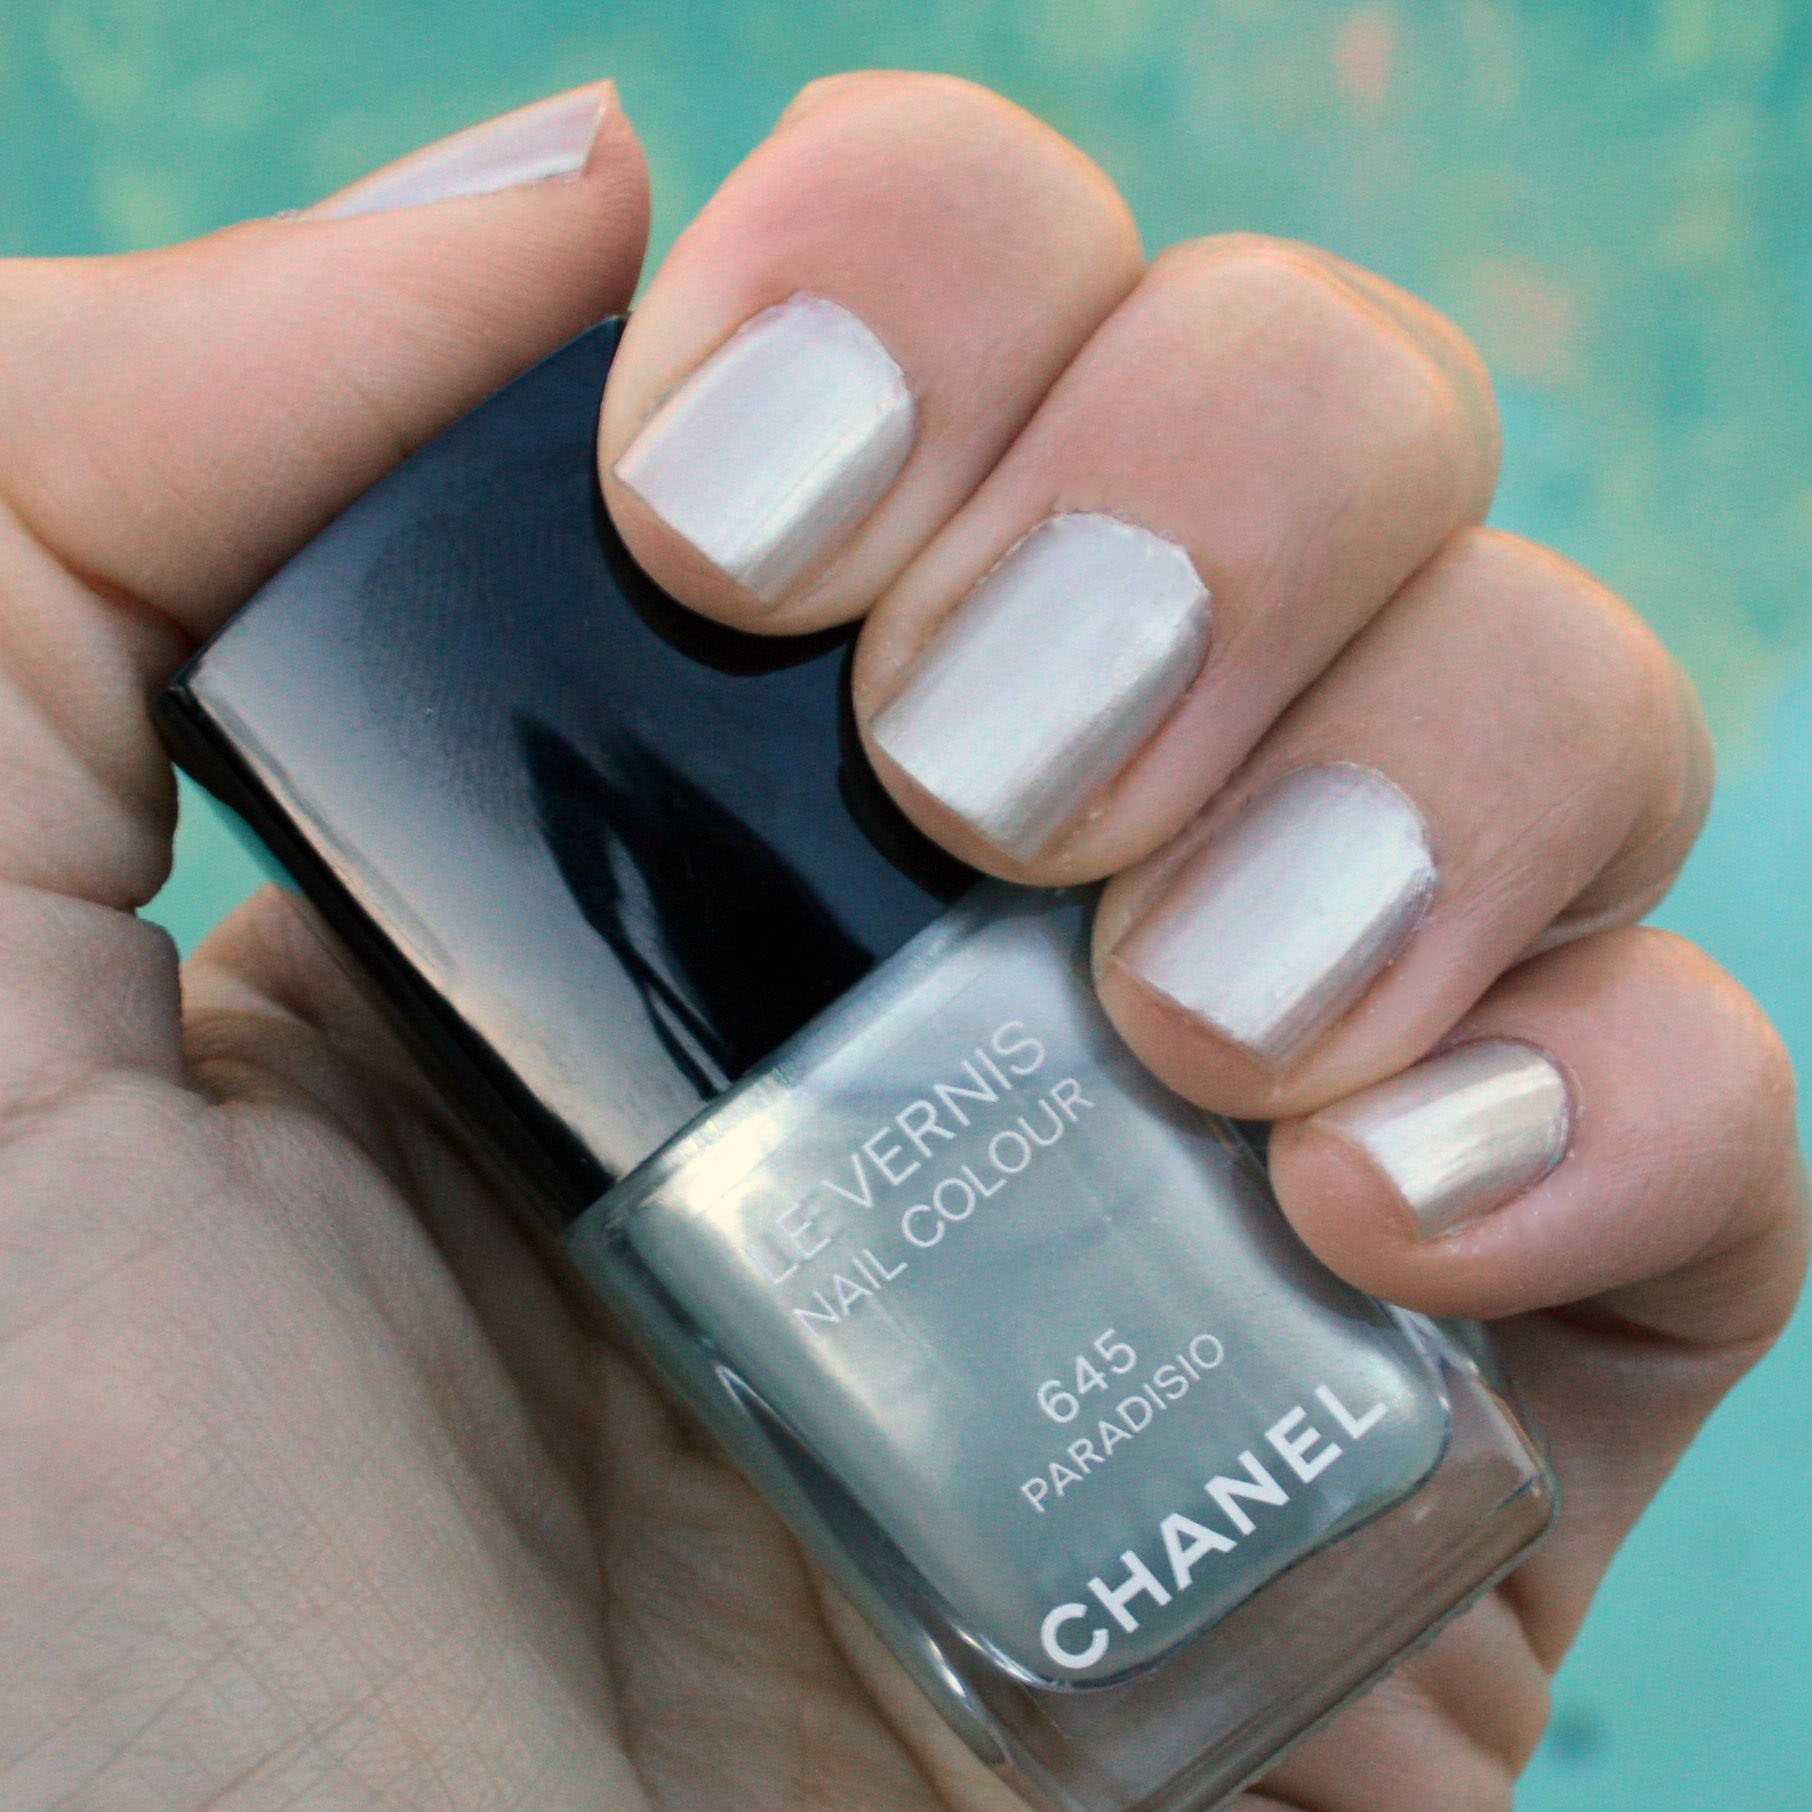 Chanel Paradisio nail polish for spring 2015 – Bay Area Fashionista